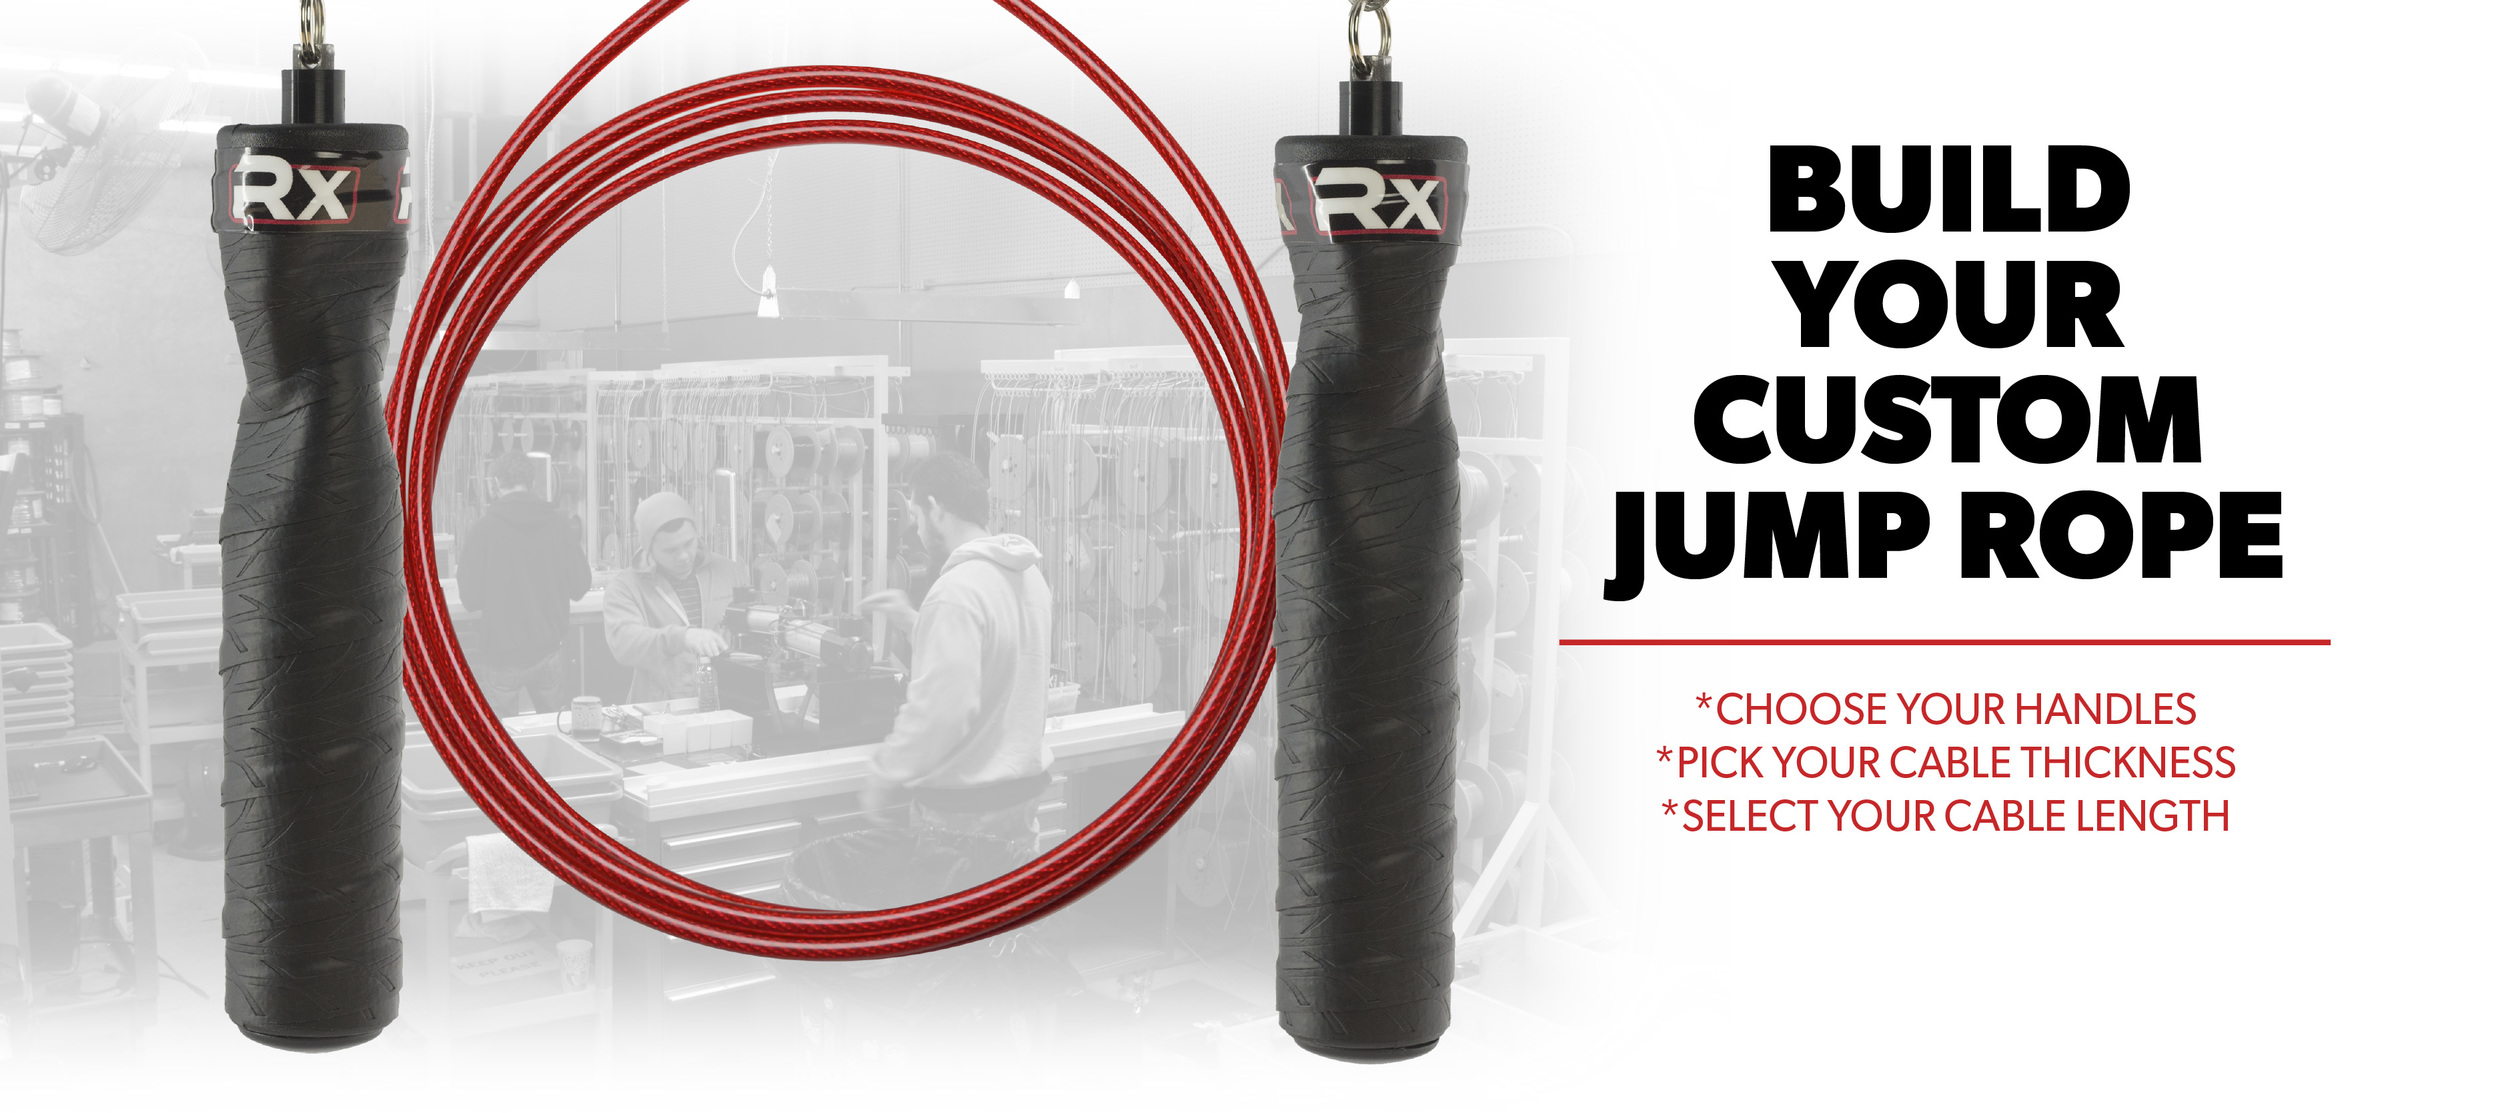 You really need to get a good personal speed rope. Why? Everyone's height is different. Having a rope that is the proper length is vital in minimizing jump rope frustration. These jump ropes are an expensive initial investment, but what I love about Life as RX is that you can customize colors to your taste, they will cut the rope for you when you order it, and as you improve, you can get thinner or replacement rope for only $10.